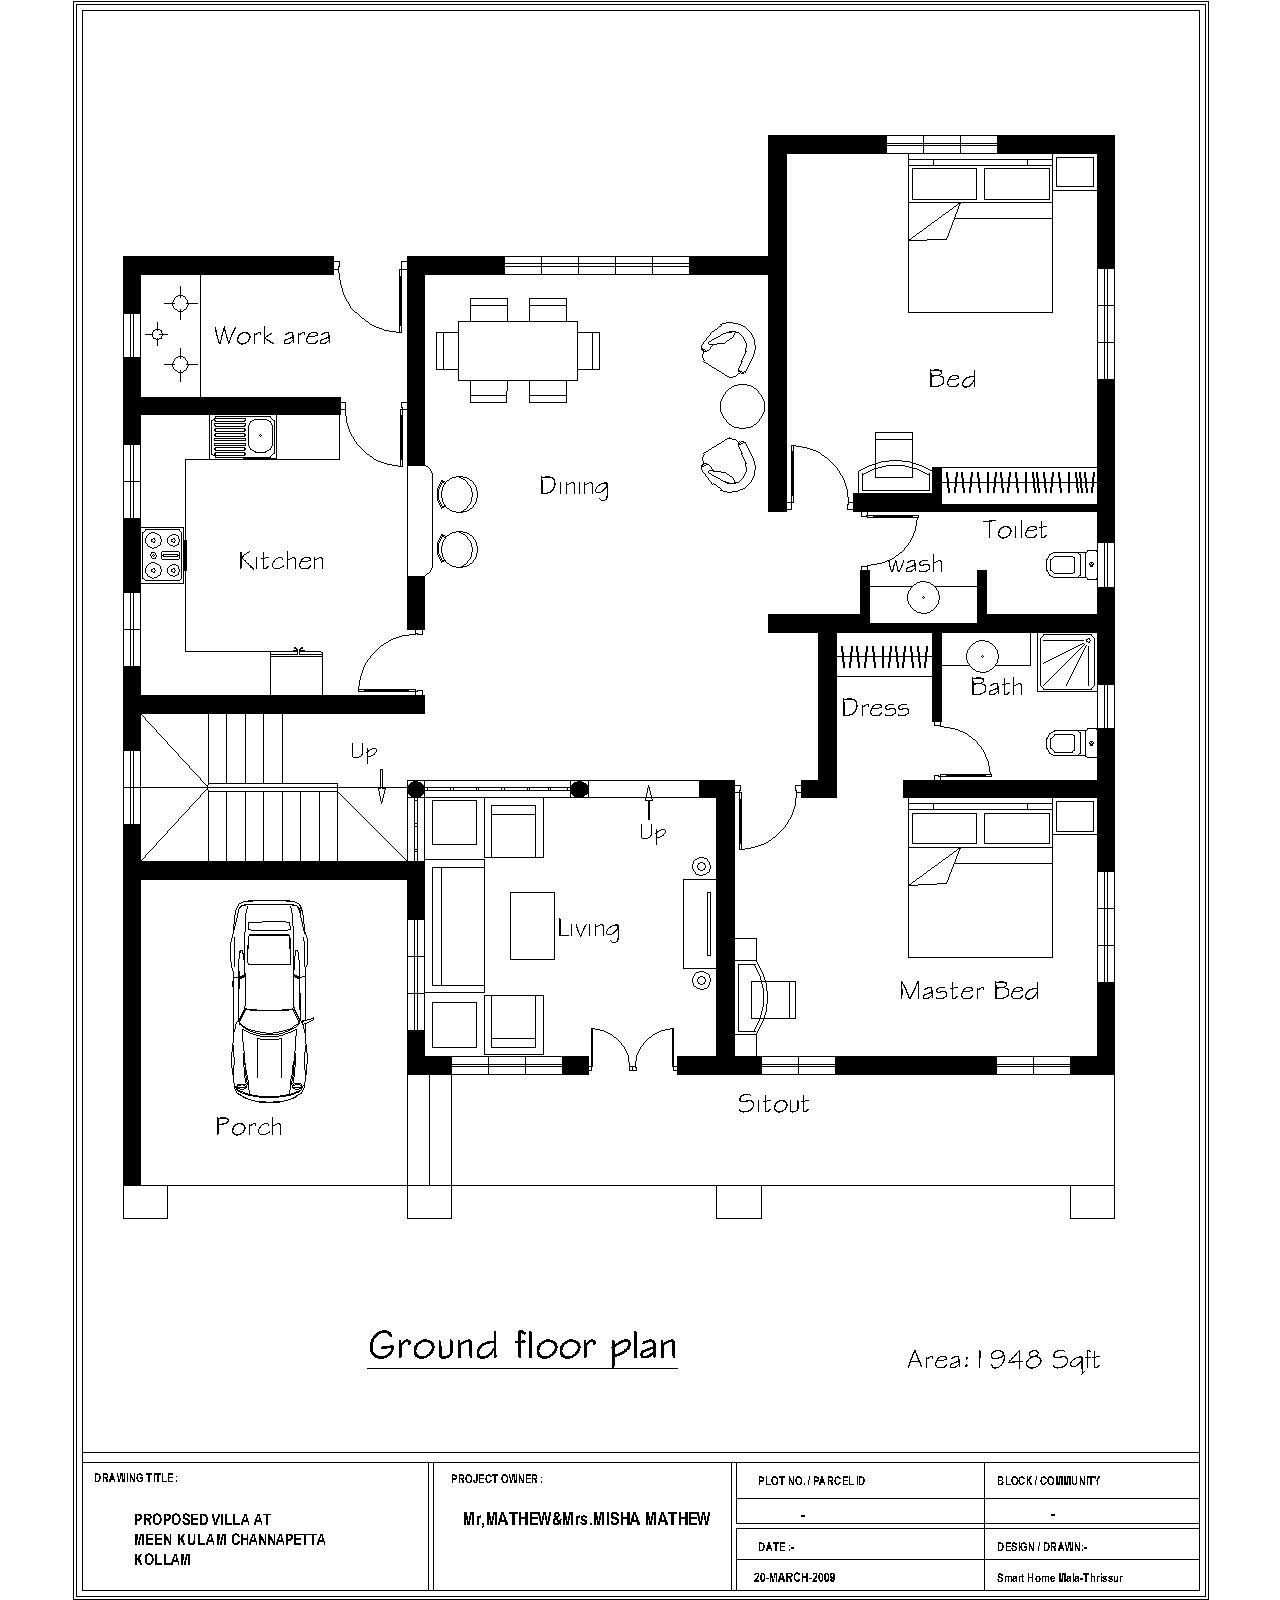 Bedroom Floor Plans Bedroom Furniture High Resolution: 4 bedroom house floor plan